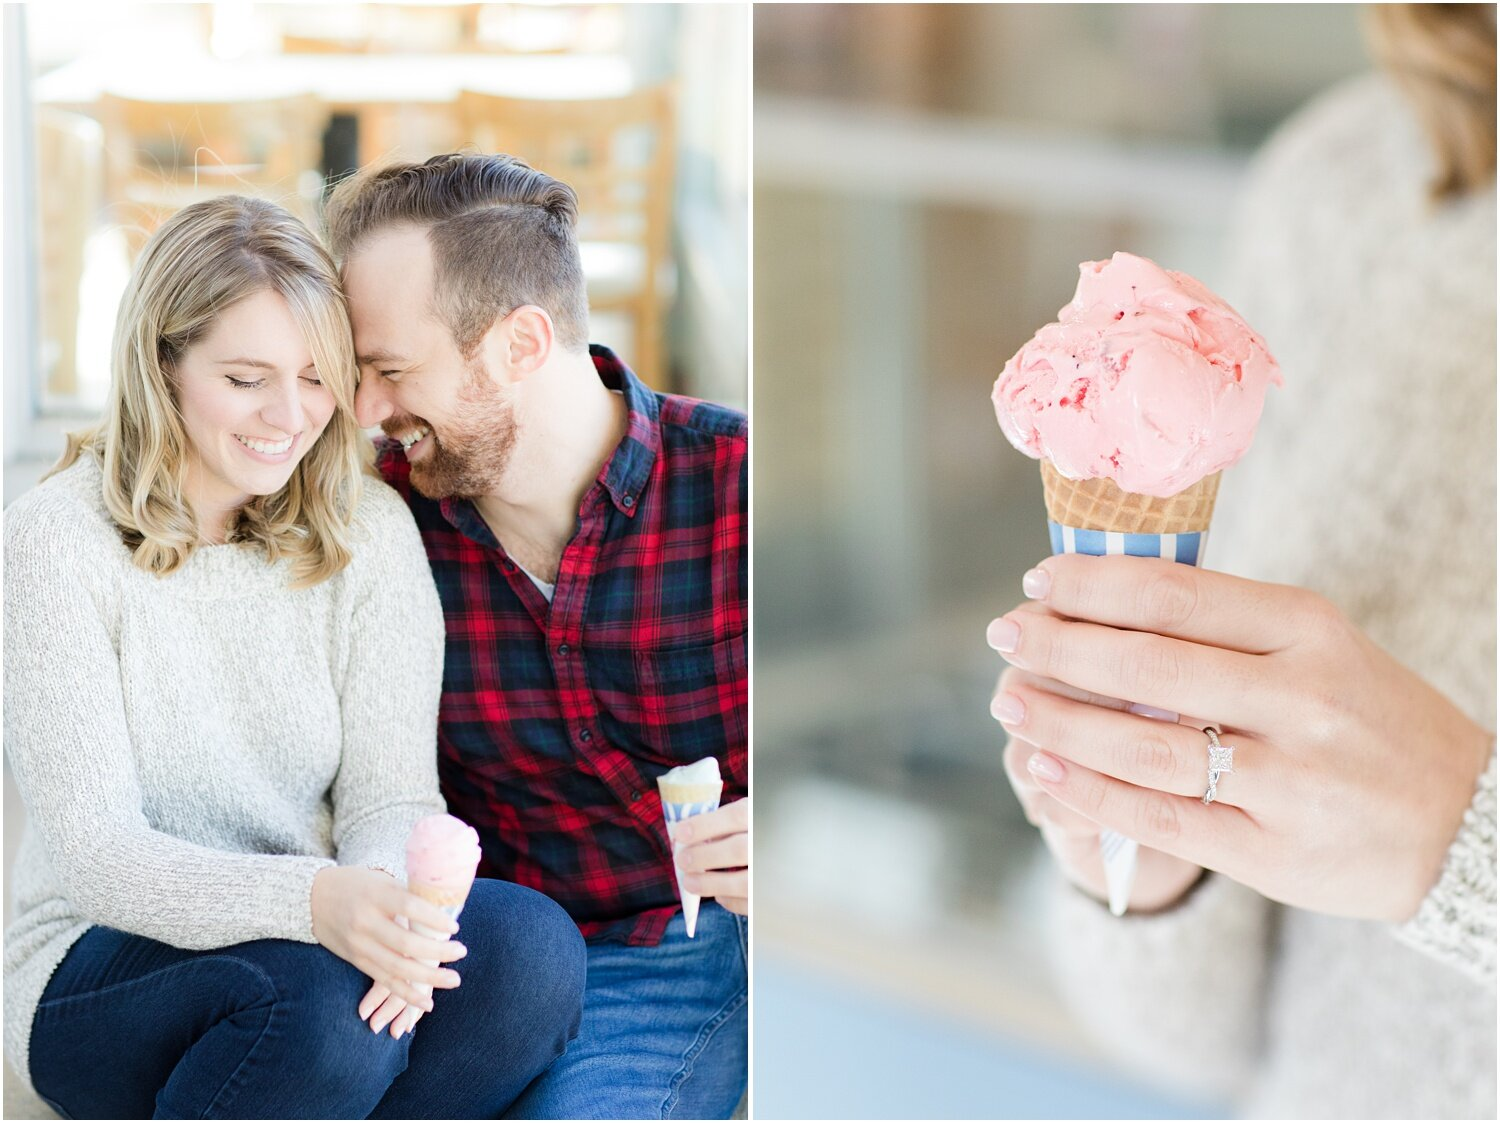 Engagement photos with ice cream cones at Hoffman's in Spring Lake, NJ.